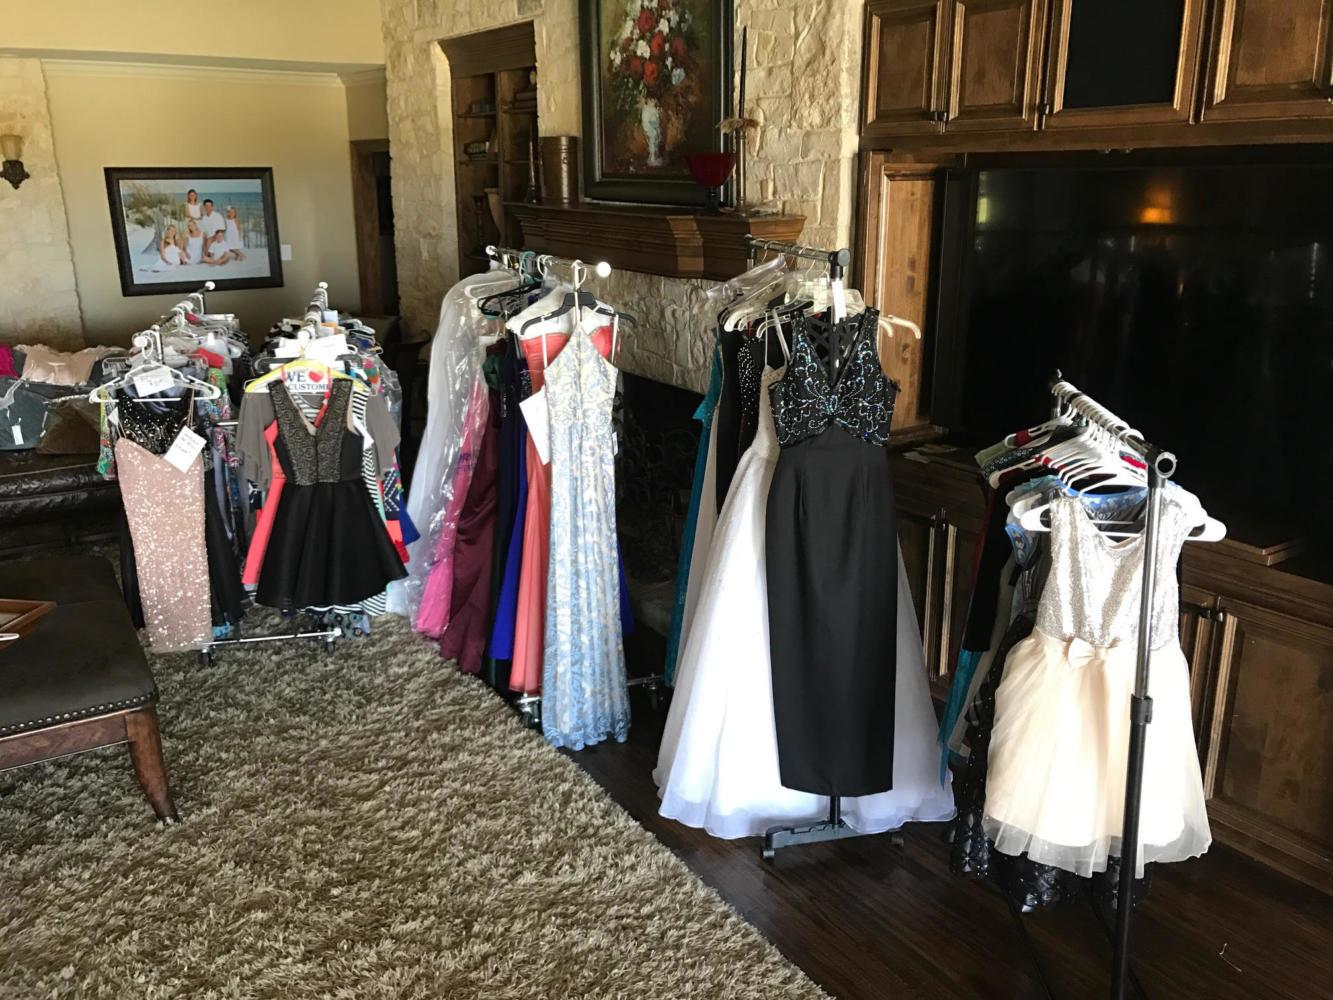 This+Saturday+is+the+dress+swap+n+shop+event+in+Coppell.++There+is+about+200+dresses+from+several+different+areas+in+the+Dallas+metroplex.+